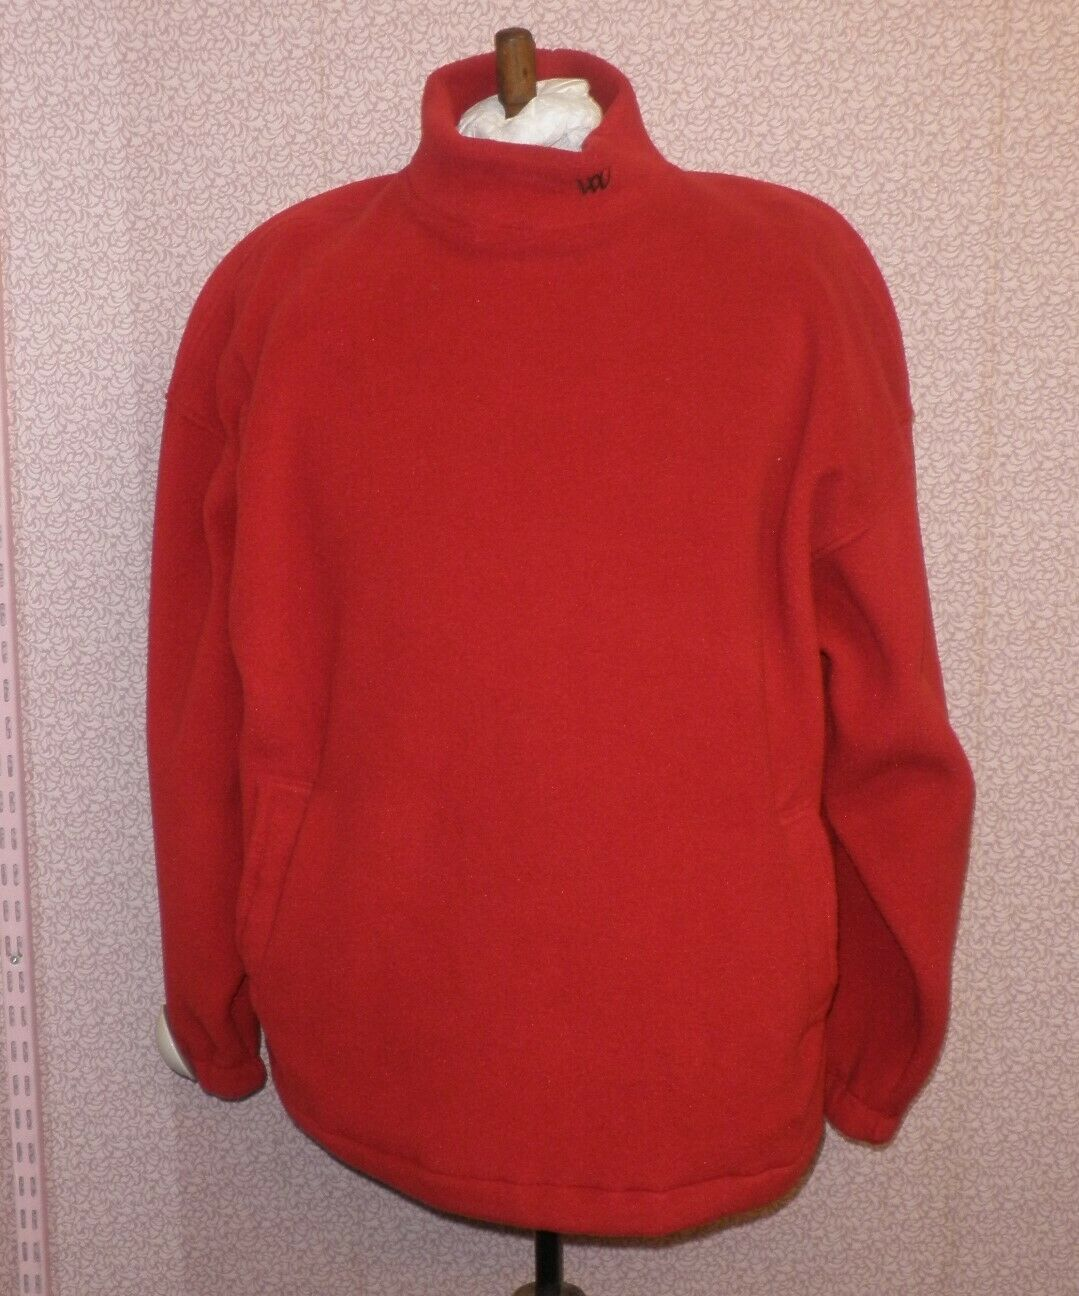 Woof Wear  Polartec Fleece Jumpers In Red Or Navy  outlet online store